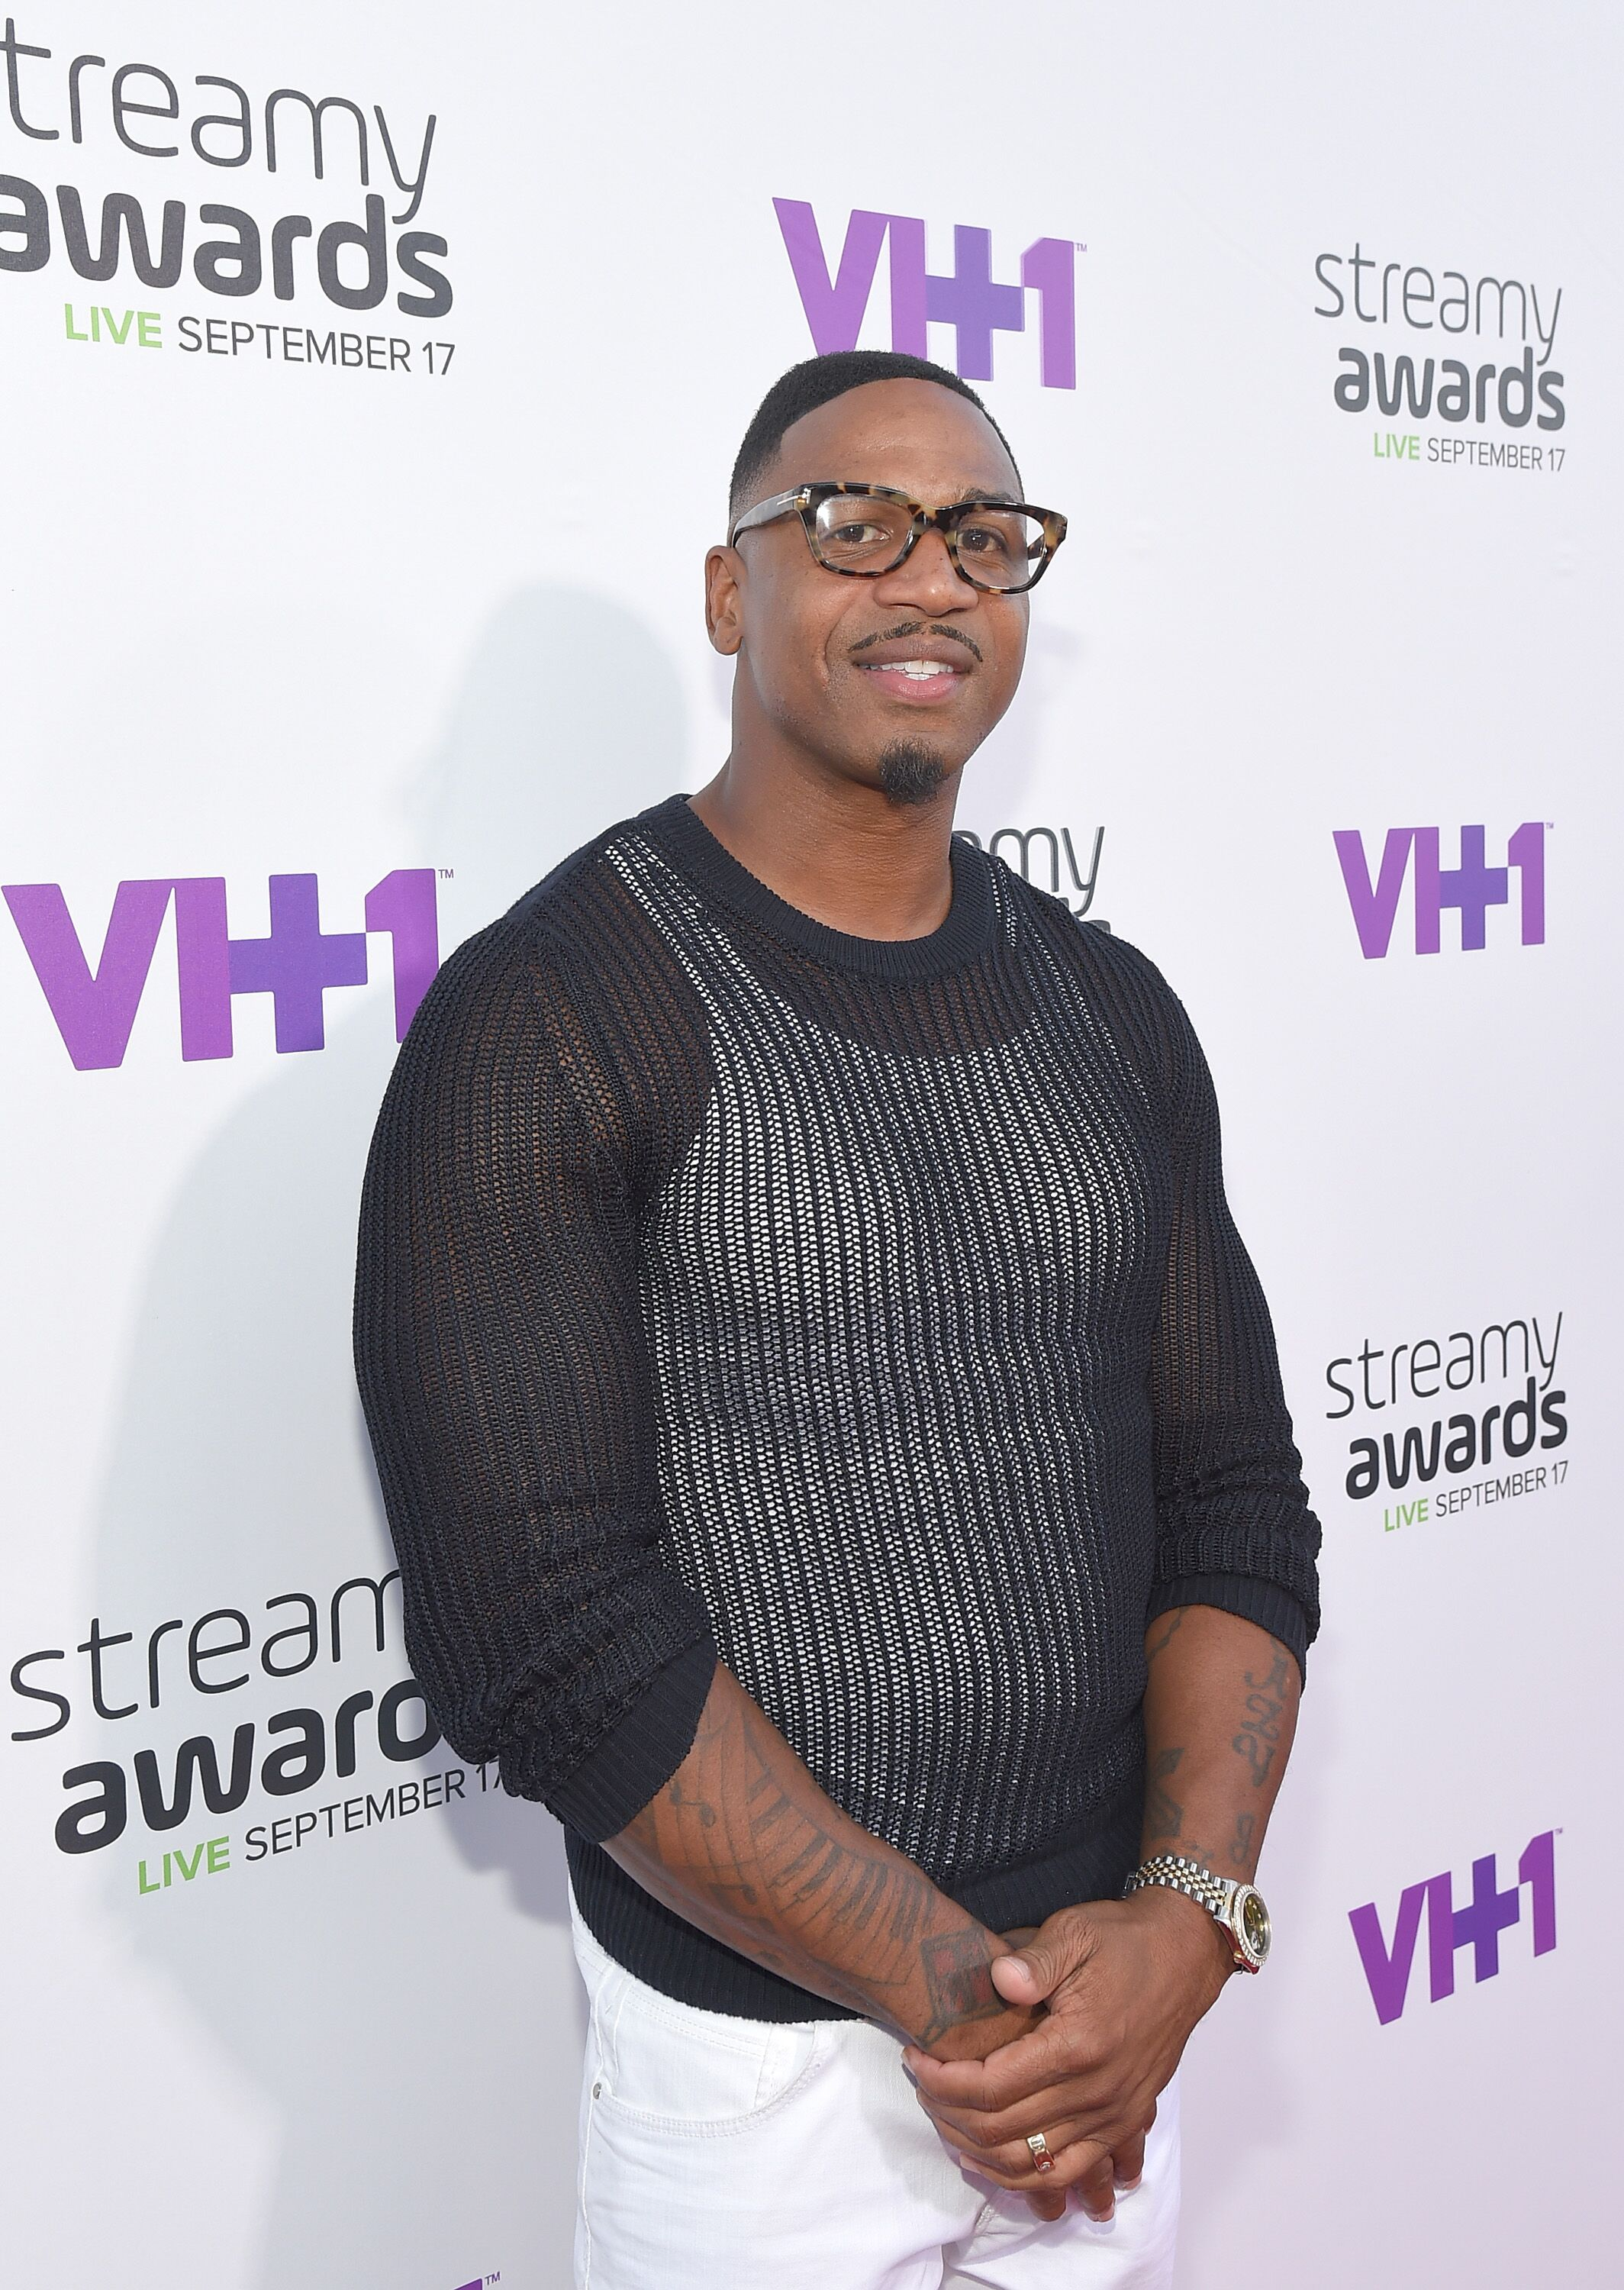 Stevie J attends the VH1 Streamy Awards | Source: Getty Images/GlobalImagesUkraine